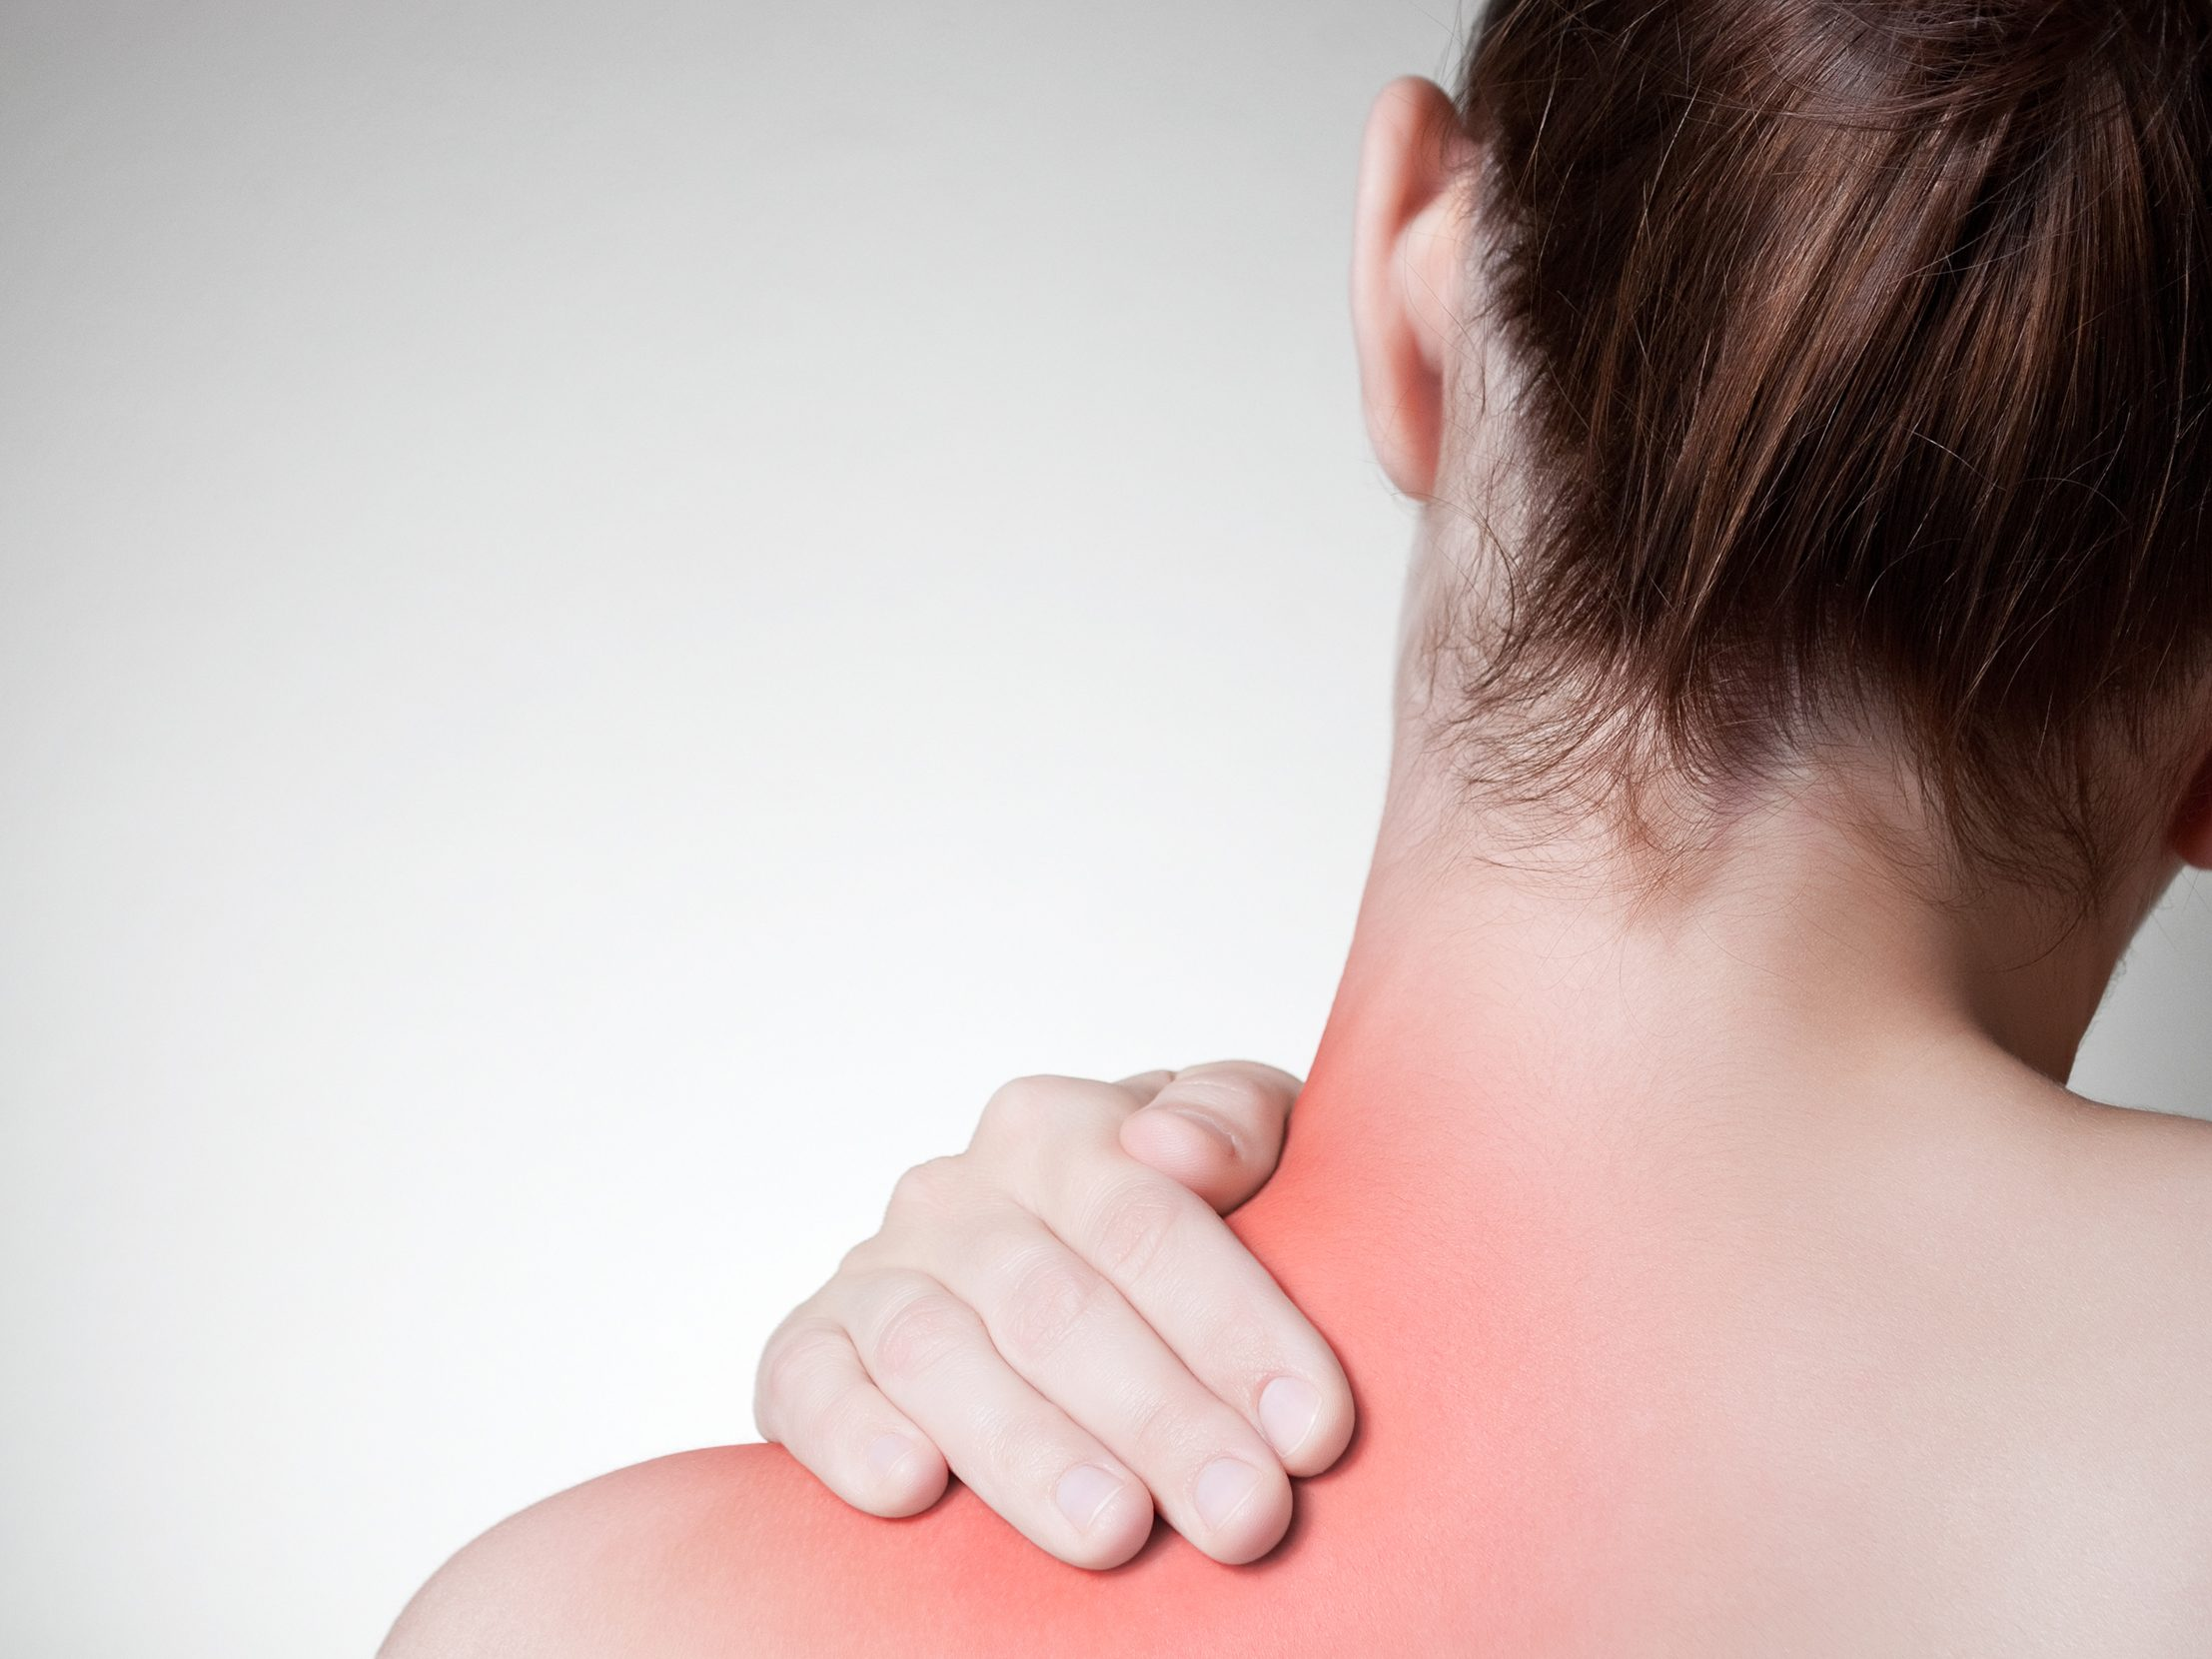 How to Avoid Sore Muscles